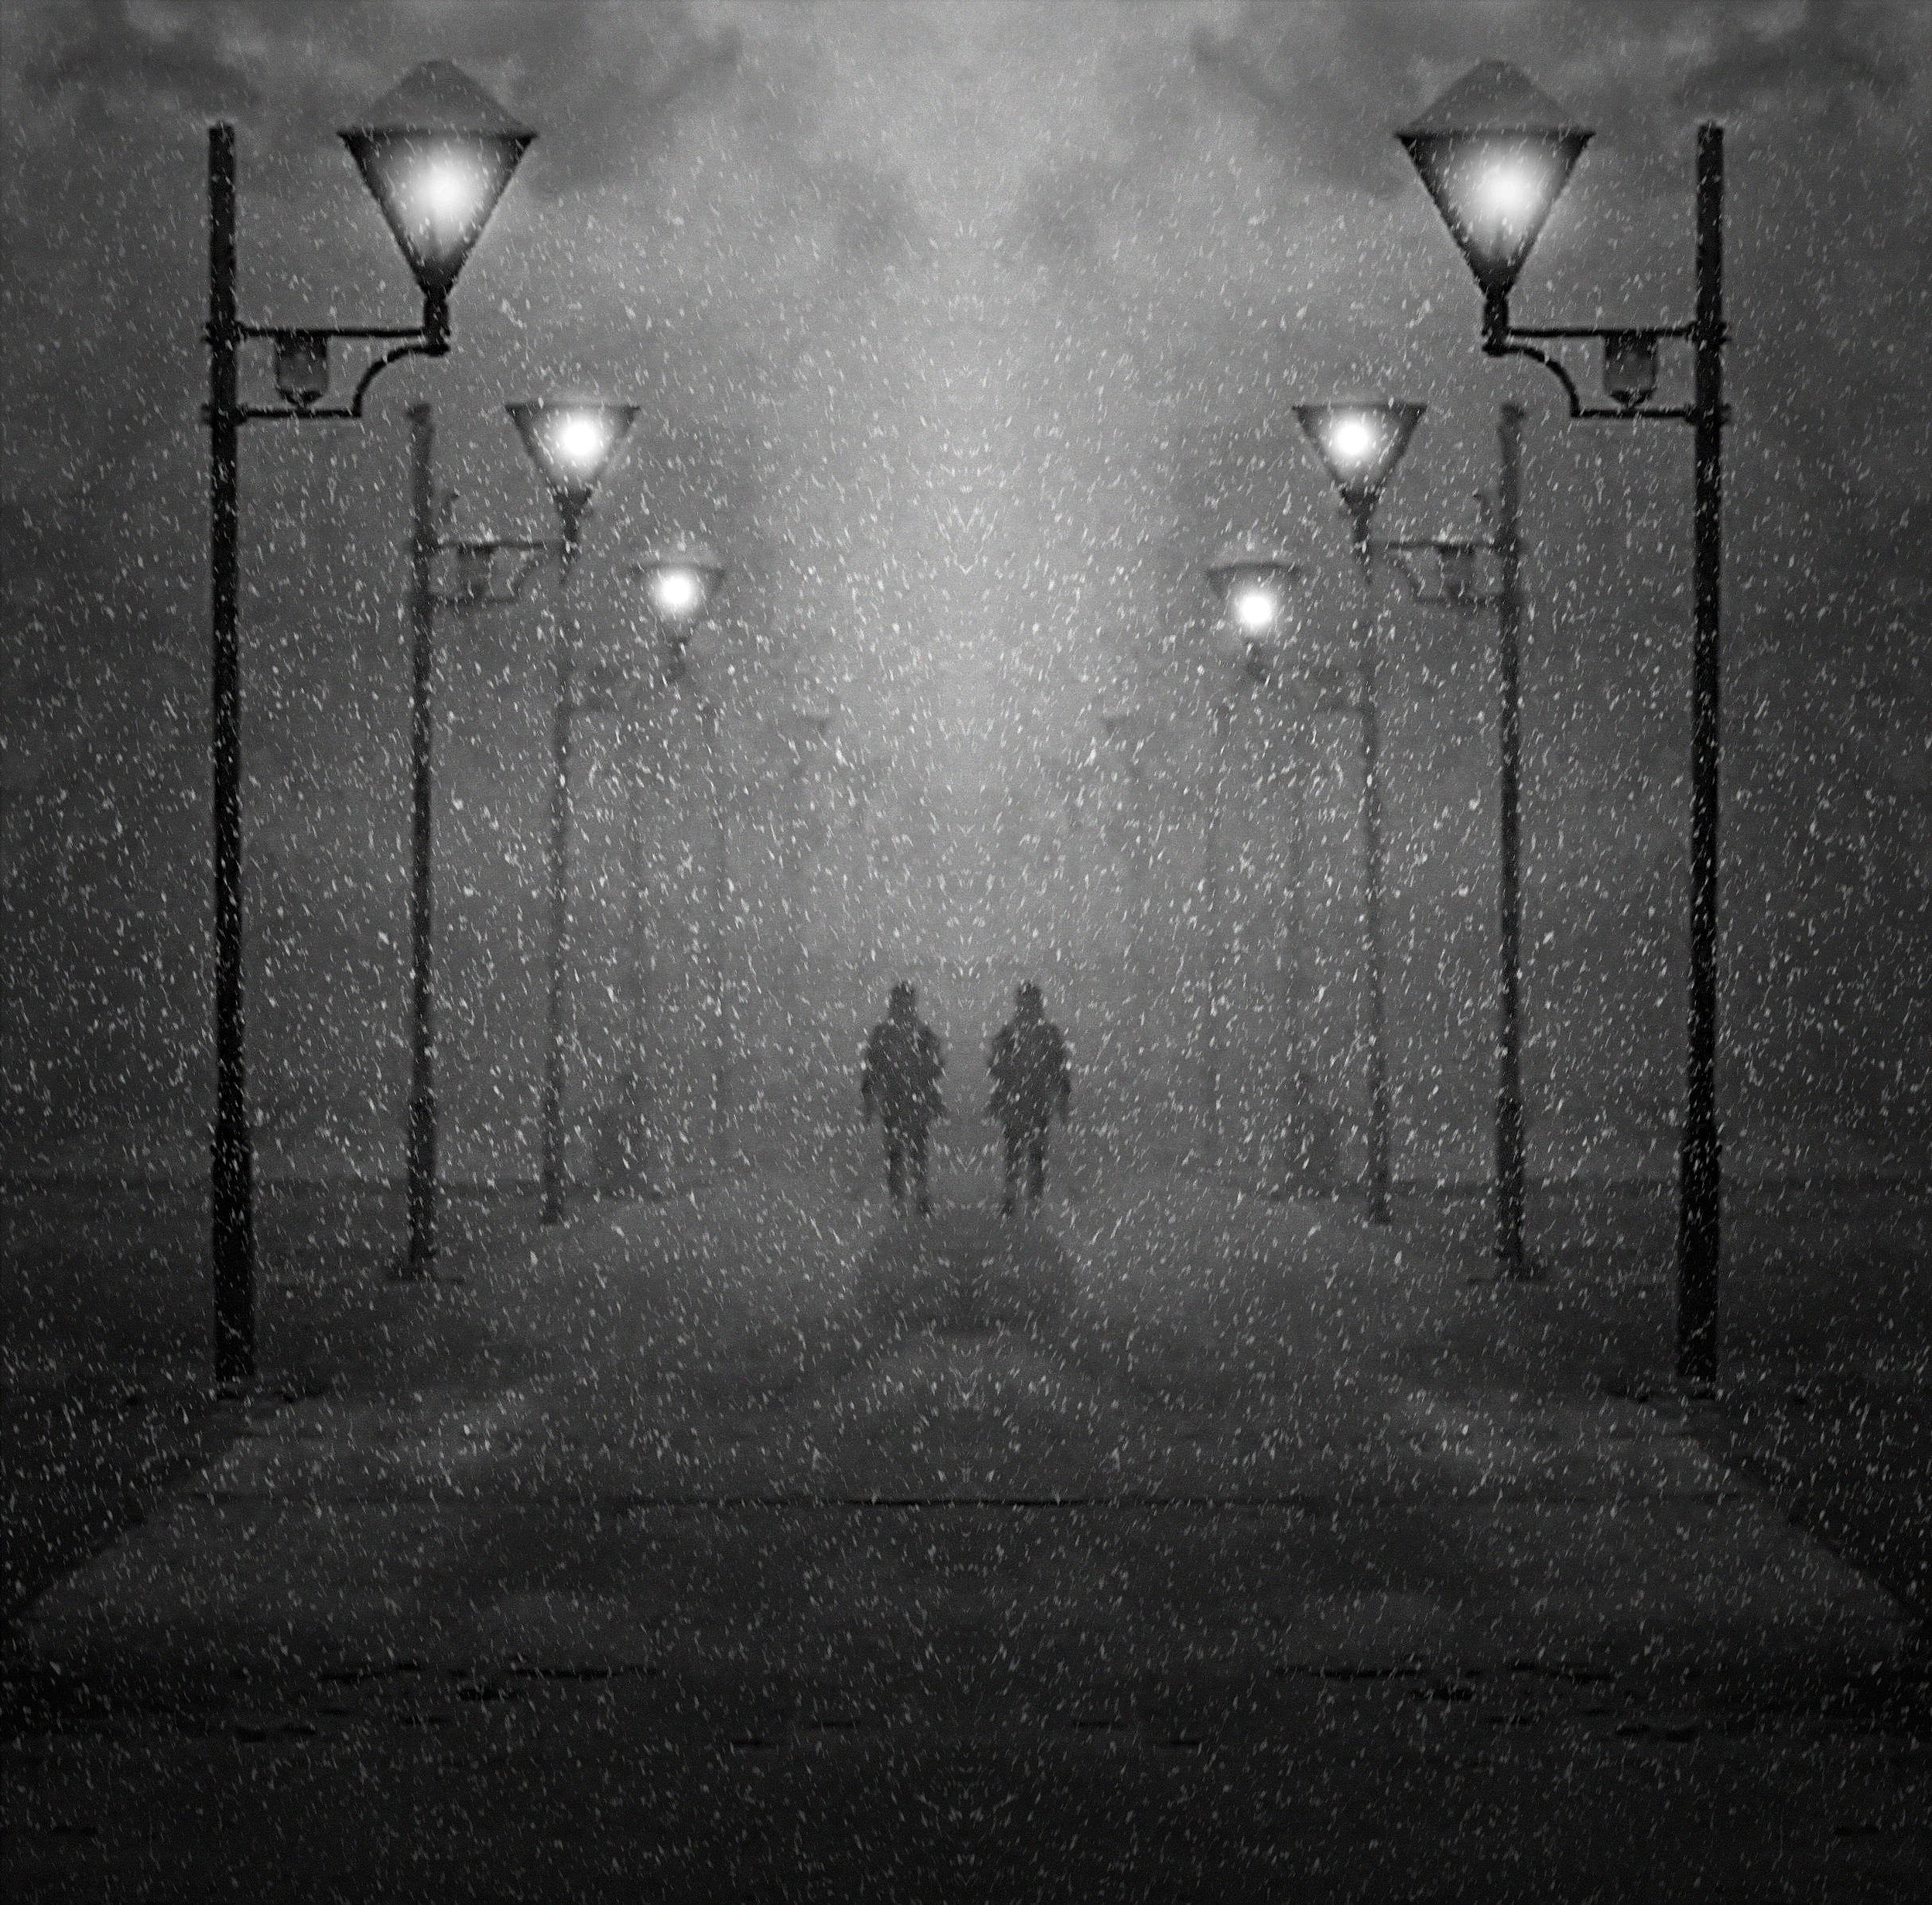 81757 download wallpaper Miscellanea, Miscellaneous, Street, Snow, Snowstorm, People, Silhouettes screensavers and pictures for free